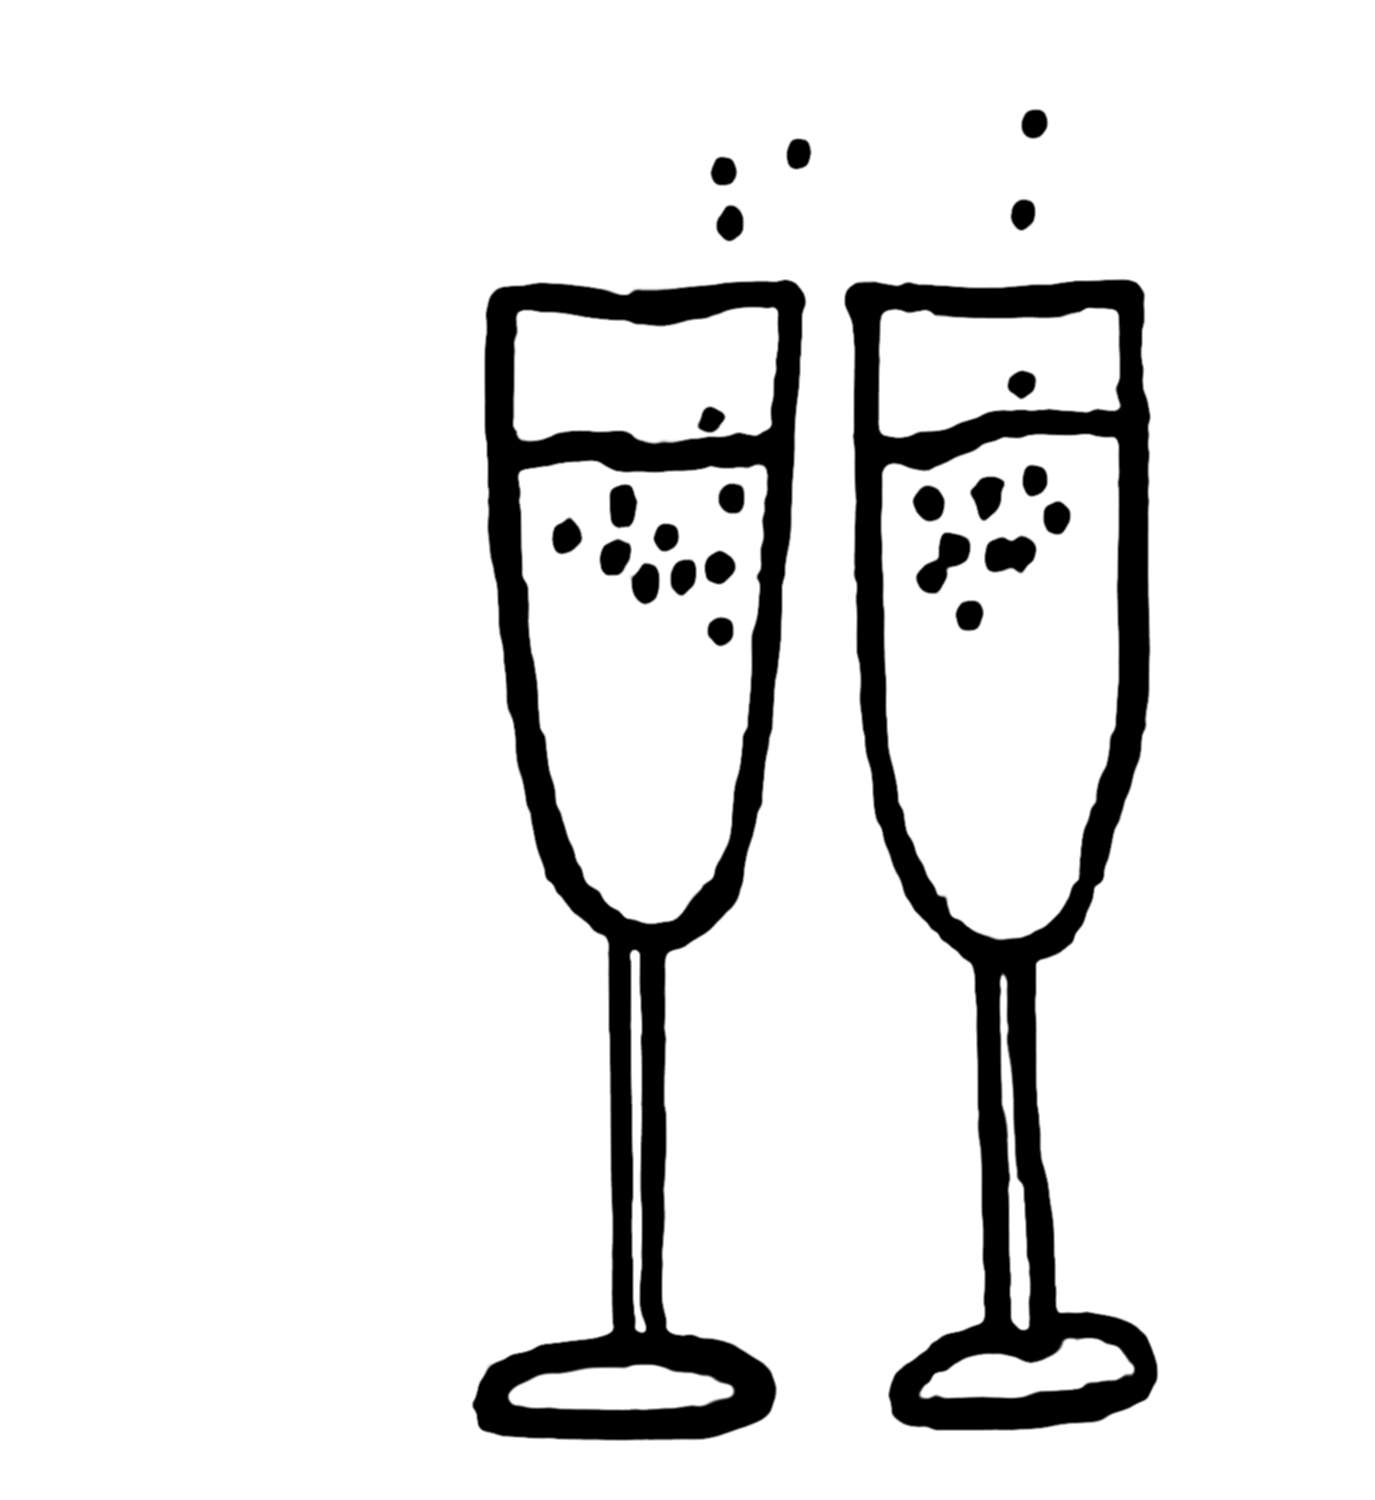 Free Champagne Glass Image Download Free Clip Art Free